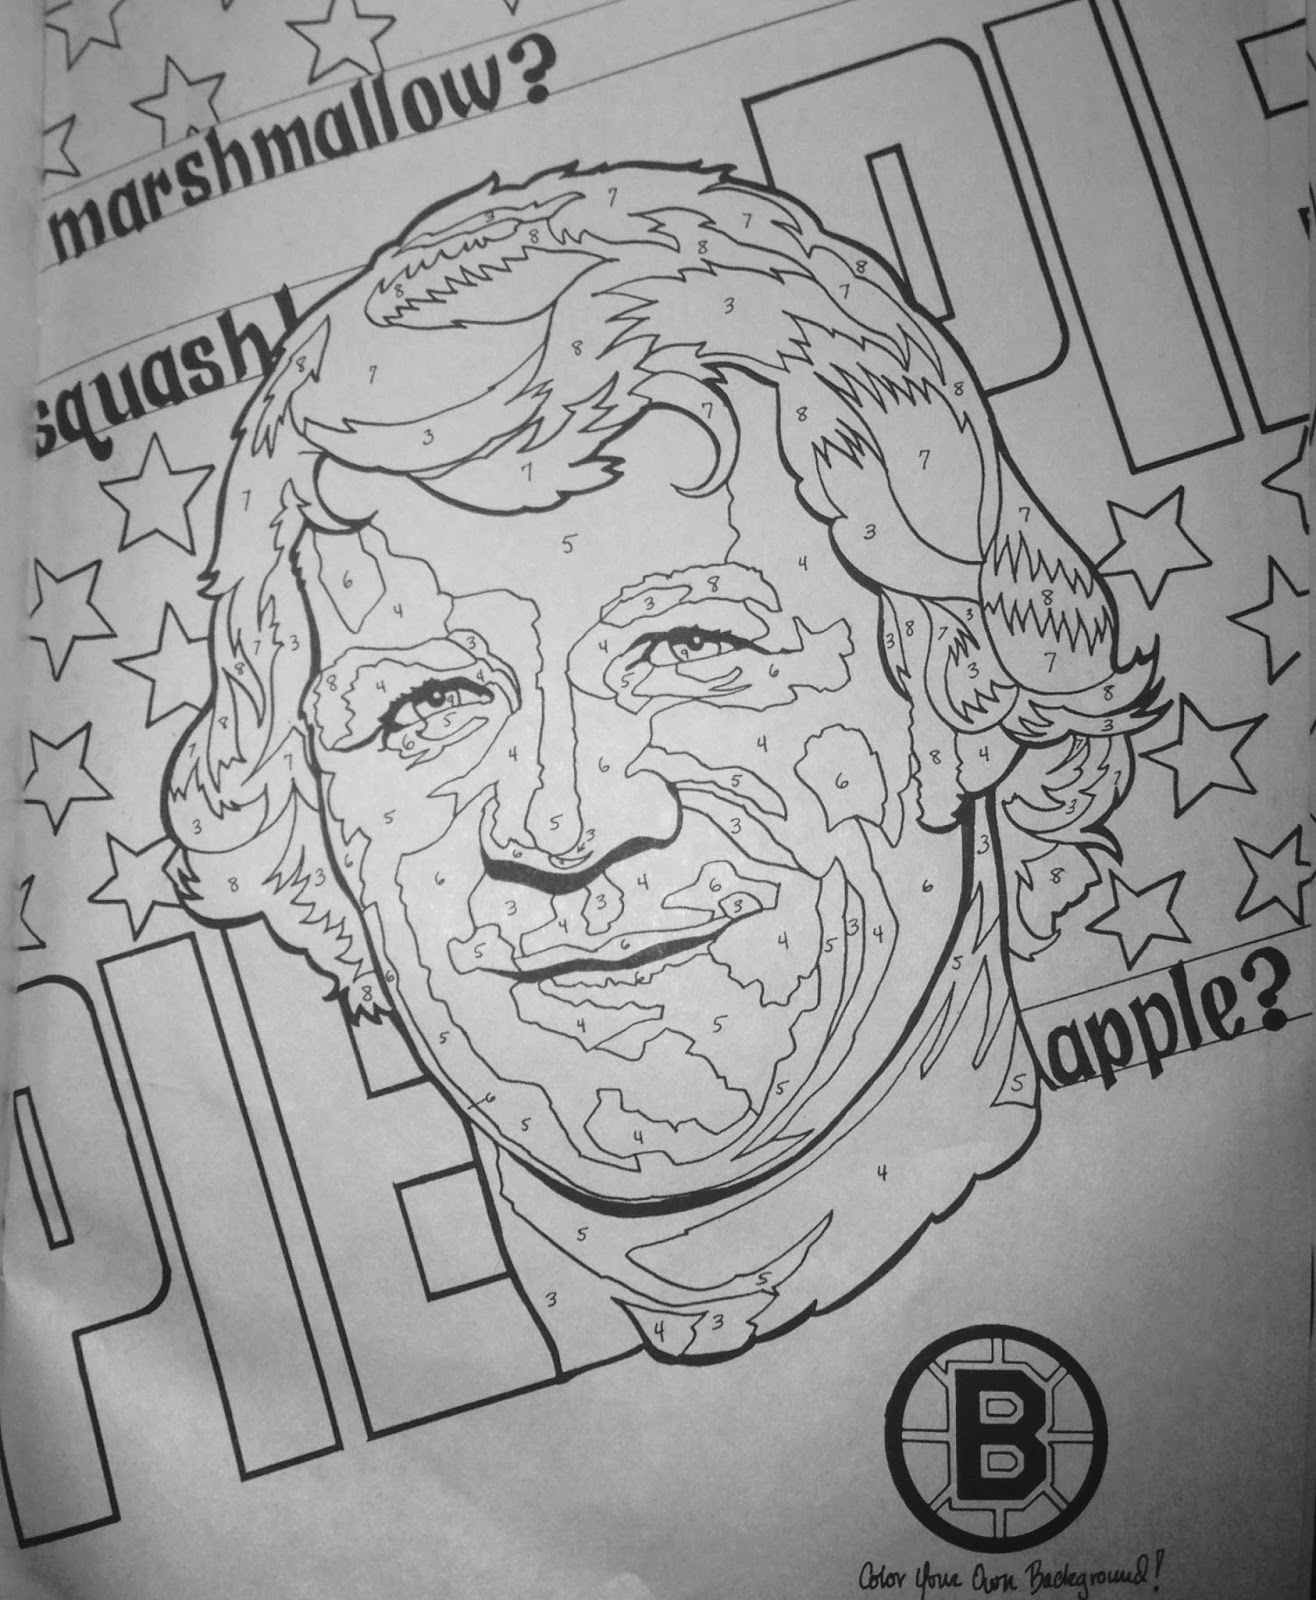 boston bruins coloring pictures boston bruins 1972 coloring book pictures bruins coloring boston